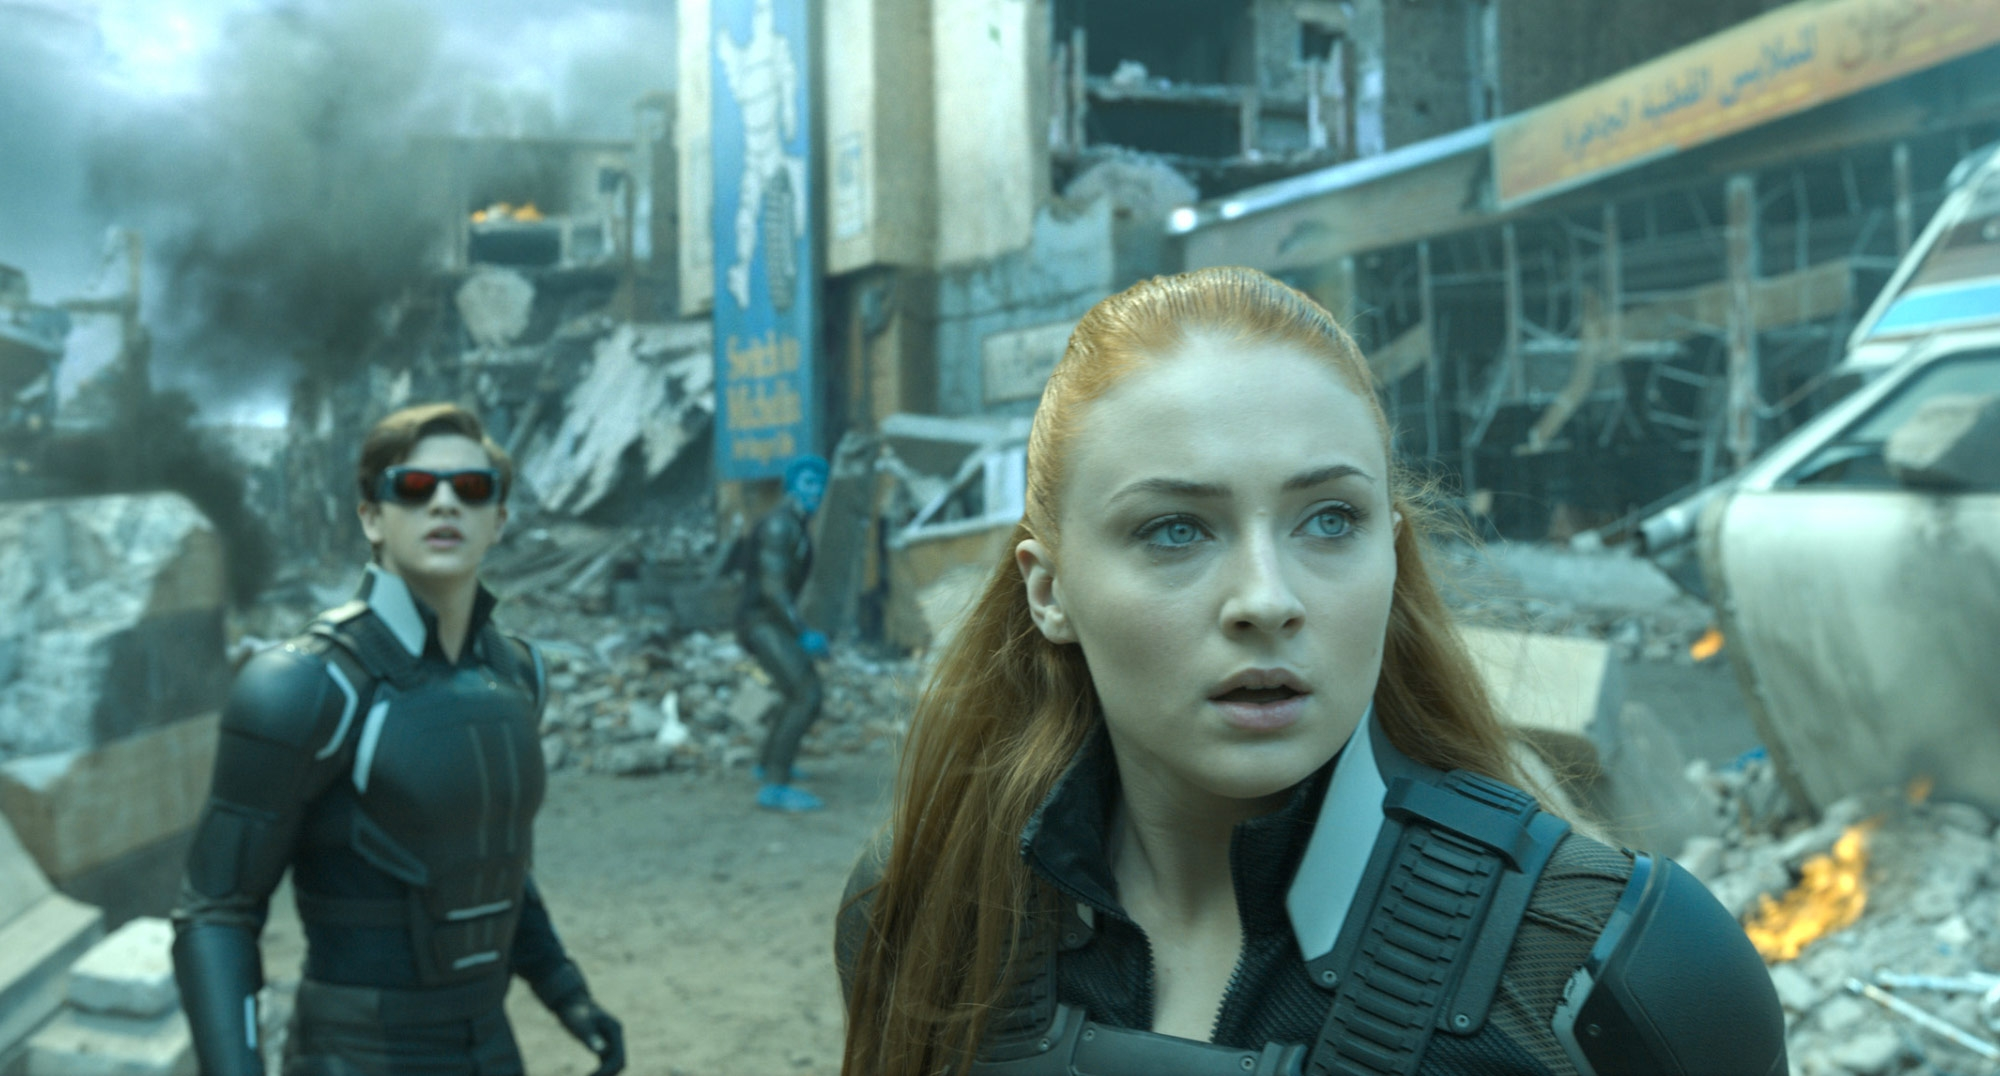 'X-Men: Apocalypse' isn't an end or a beginning (spoiler-free review)